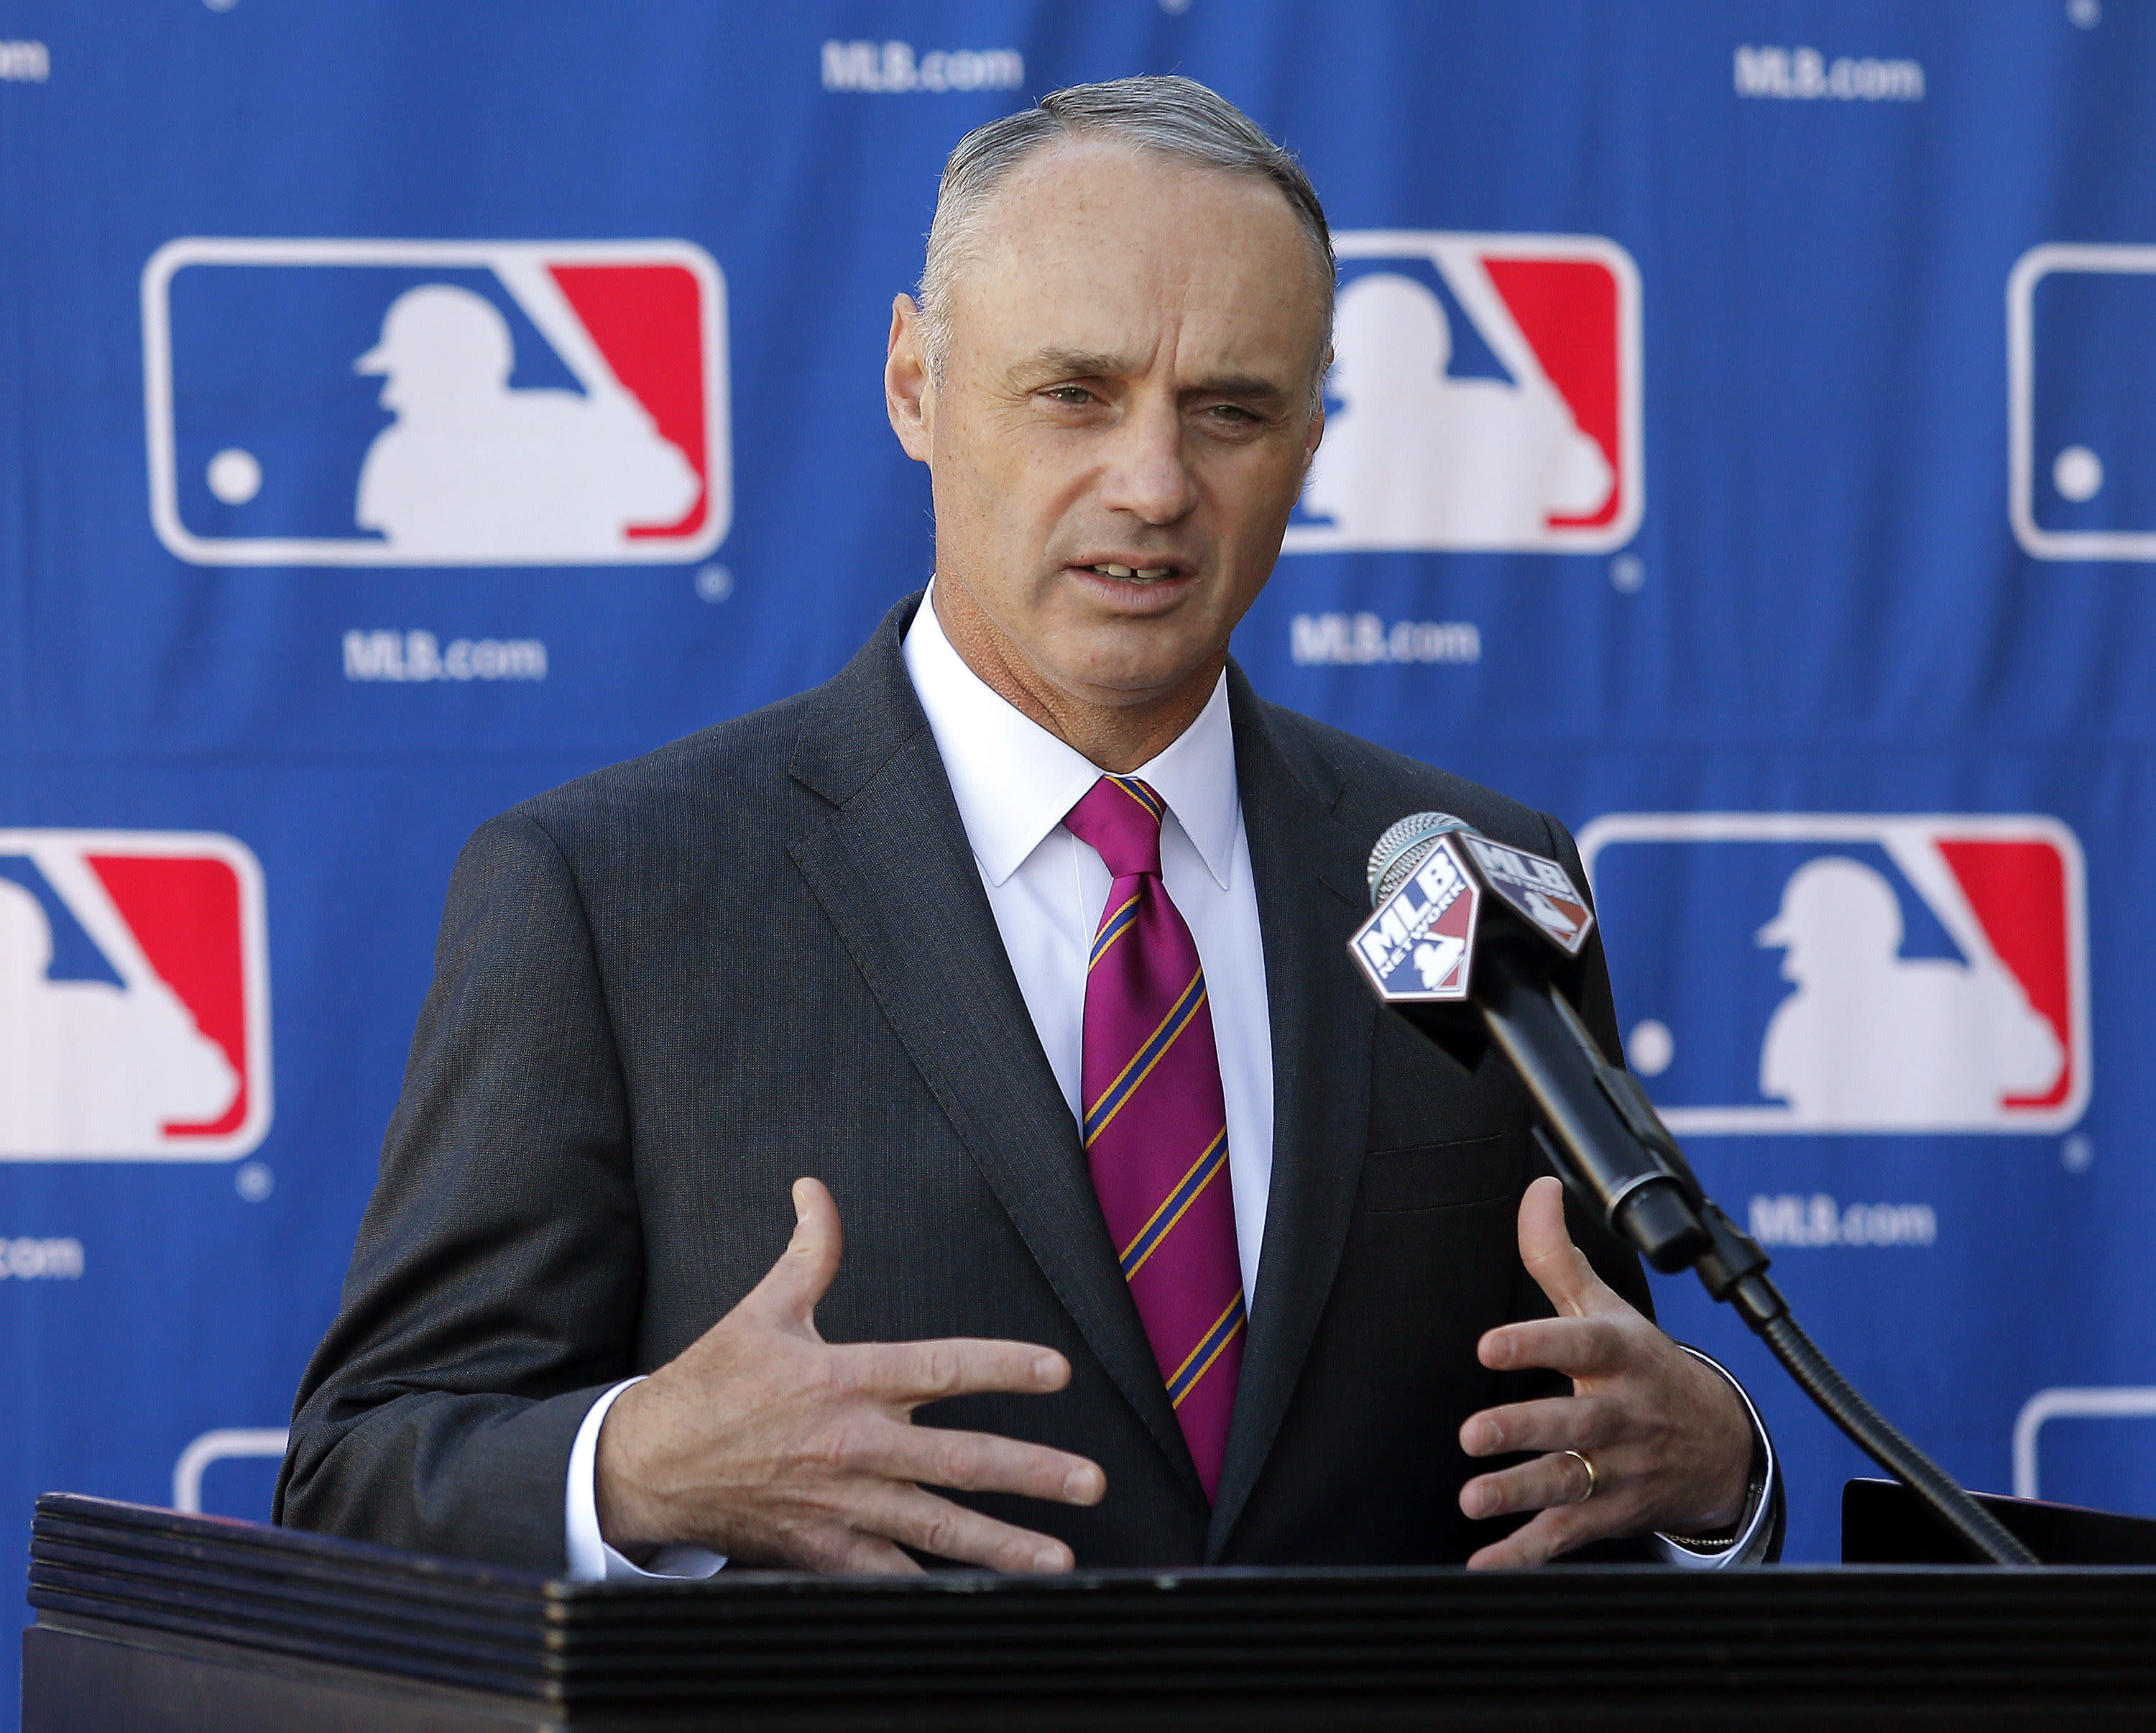 Manfred knows he'll get hit as commish - his name is on ball